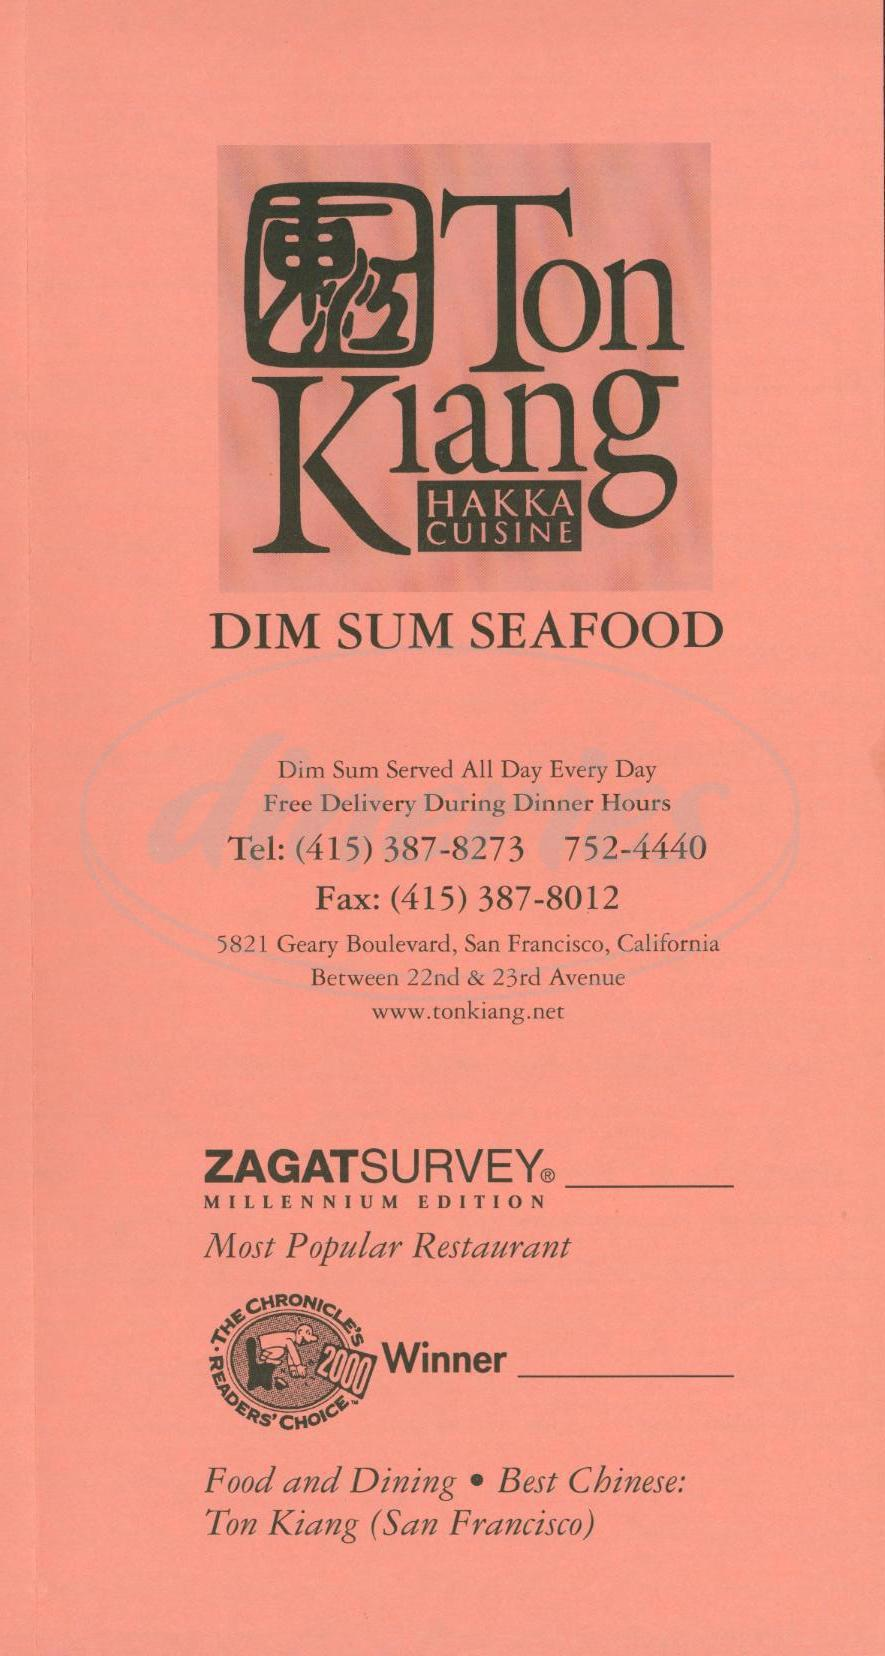 menu for Ton Kiang Restaurant